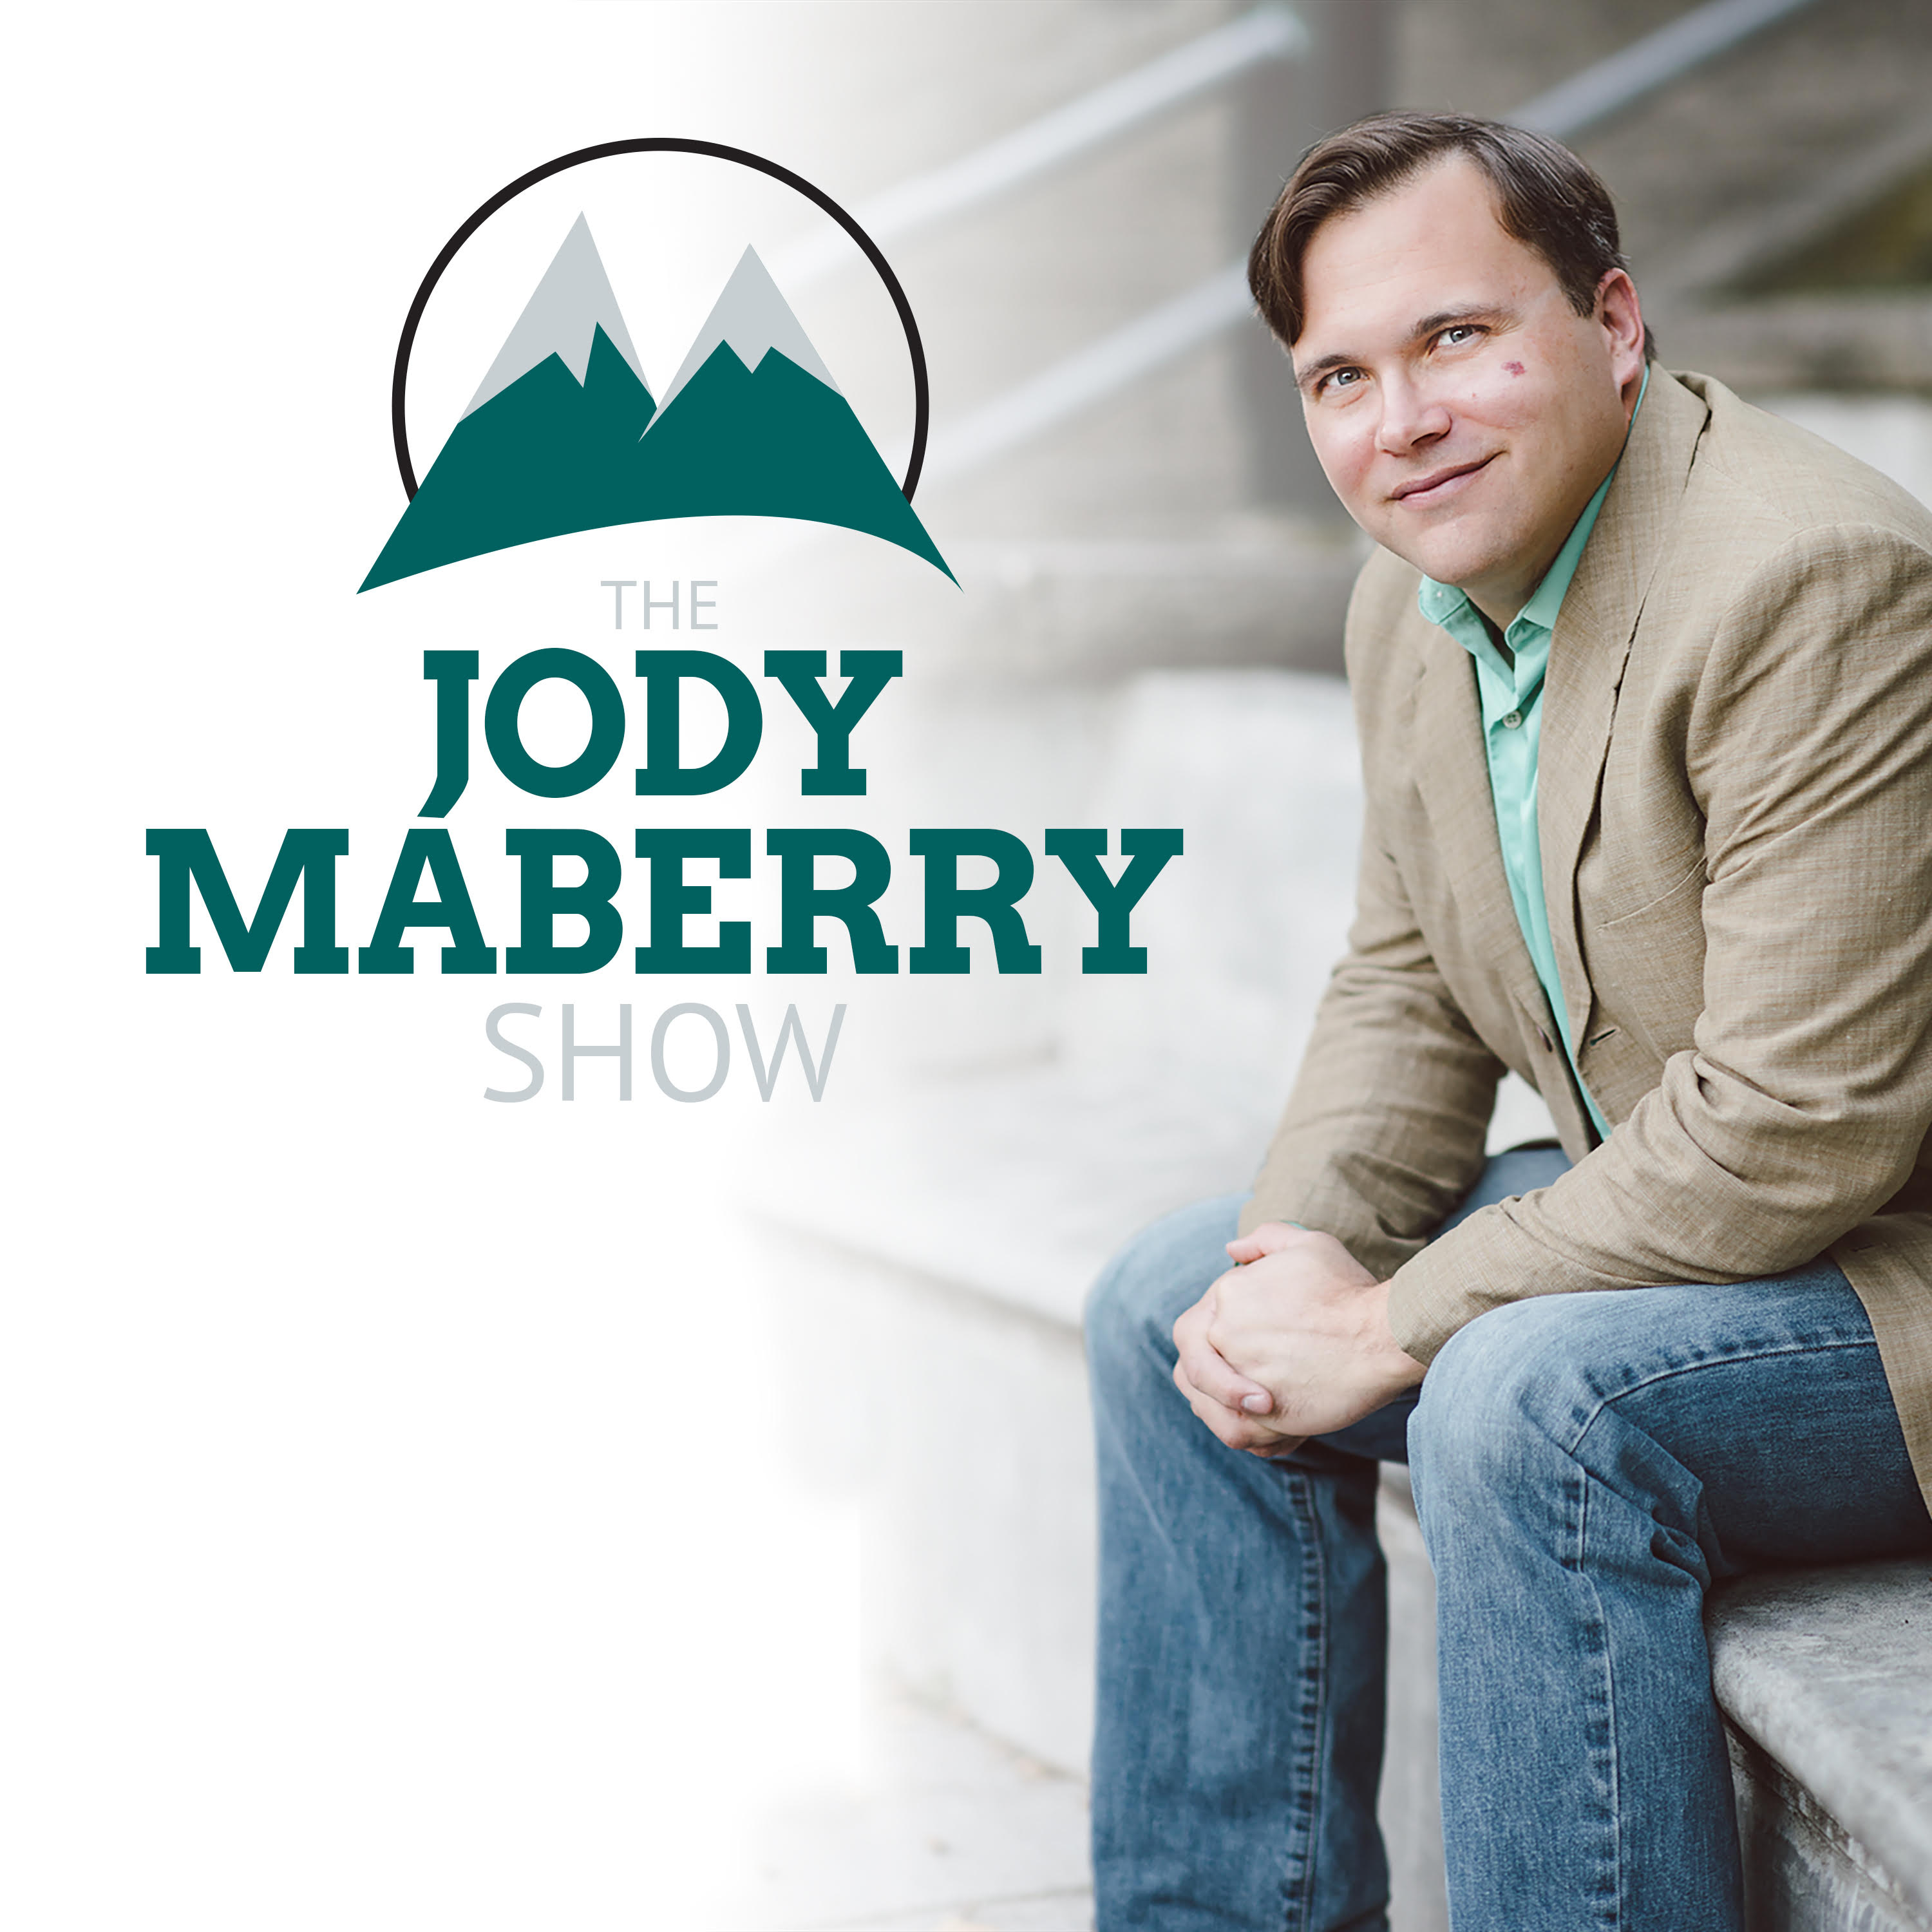 The Jody Maberry Show